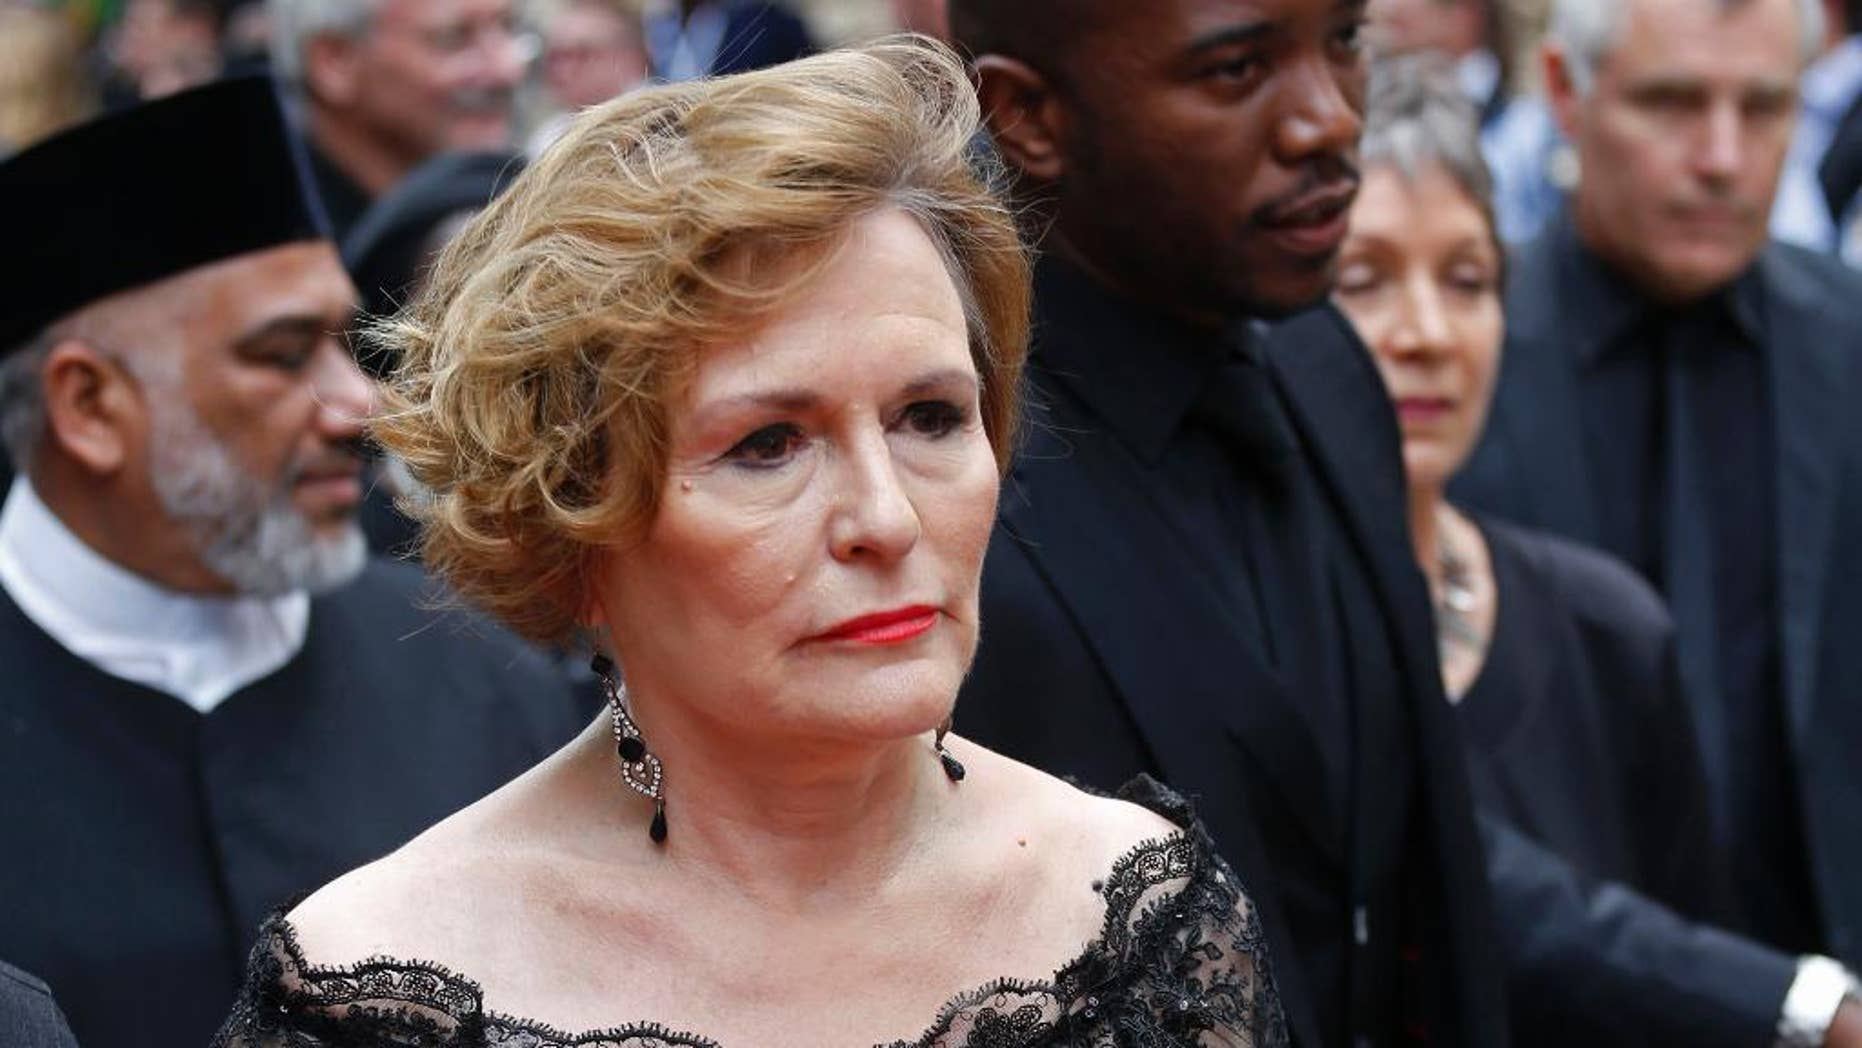 FILE - In this Thursday, Feb. 12, 2015 file photo Democratic Alliance leader, Helen Zille, arrives for the opening of Parliament in Cape Town, South Africa. Zille announced on Sunday, April 12, 2015 that she would not stand for re-election in the party's upcoming congress in May this year. (AP Photo/Schalk van Zuydam, File)